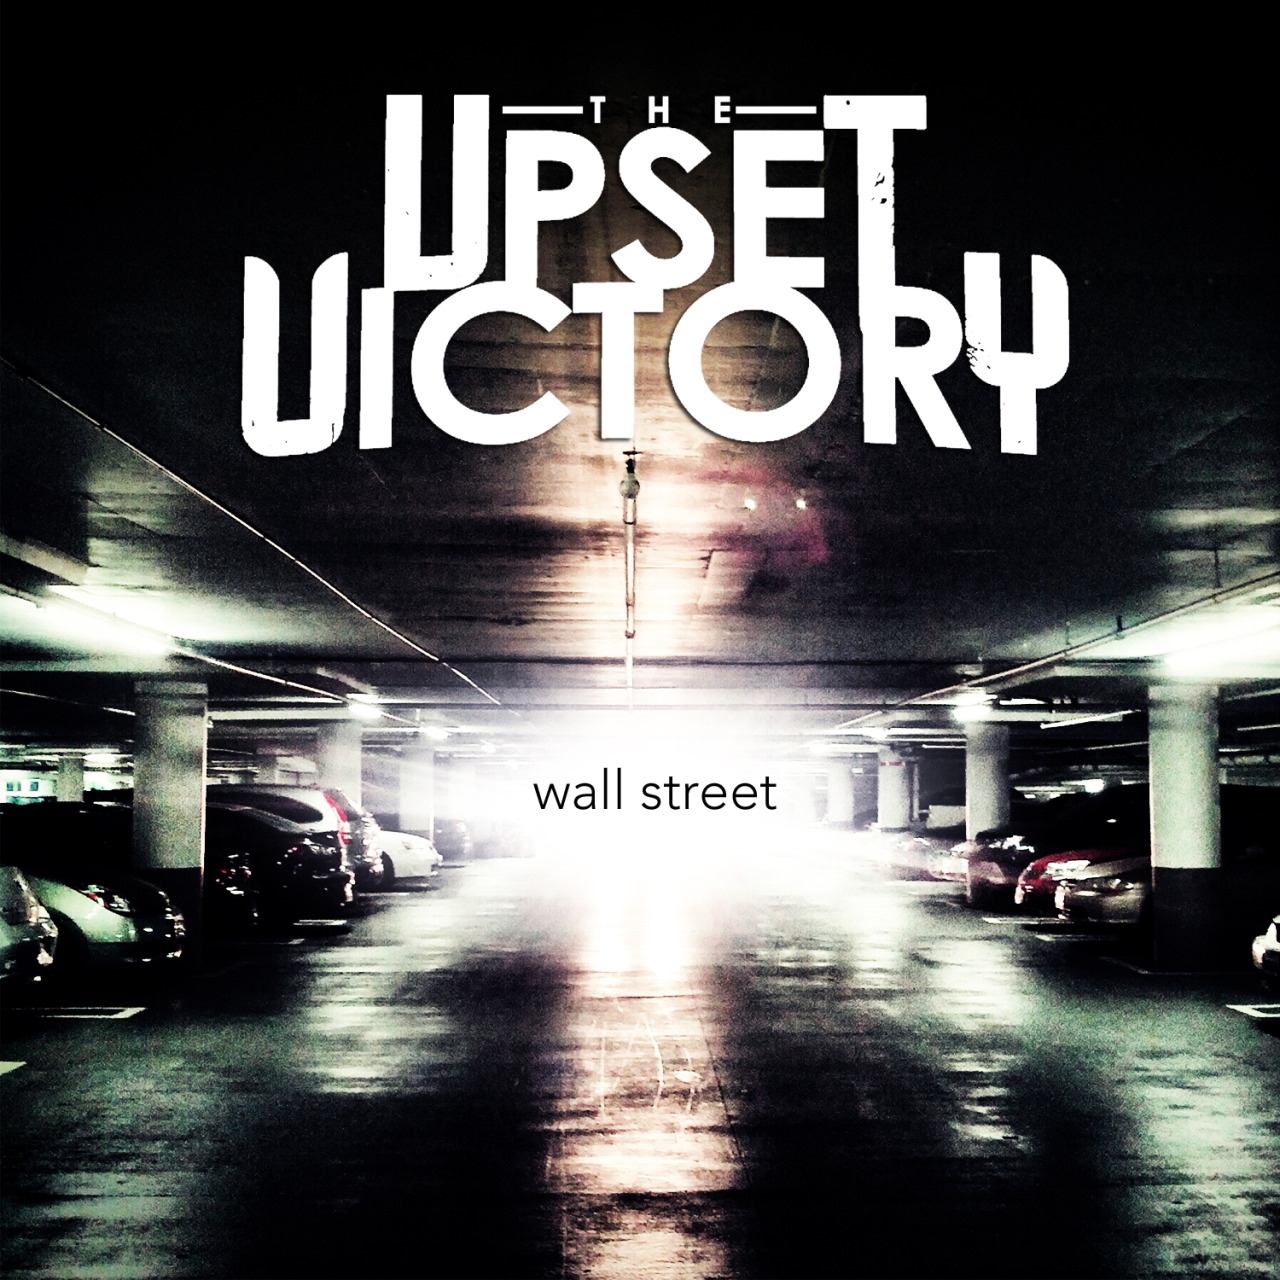 "Album announcement day…The Upset Victory presents our seventh studio release, the 'Wall Street' EP:  1. Fake This 2. Sellin' My Soul 3. In Our Hands 4. Liars & Letdowns [Bonus track] + ""Fake This"" music video   Due out Tuesday, January 29th!  We'd like to thank YOU,  Starlight Studios ,  Nuance Media , Chris Schmidt, & all of our family & friends!  Starting off 2013 the right way…w/ more new music for ya!"